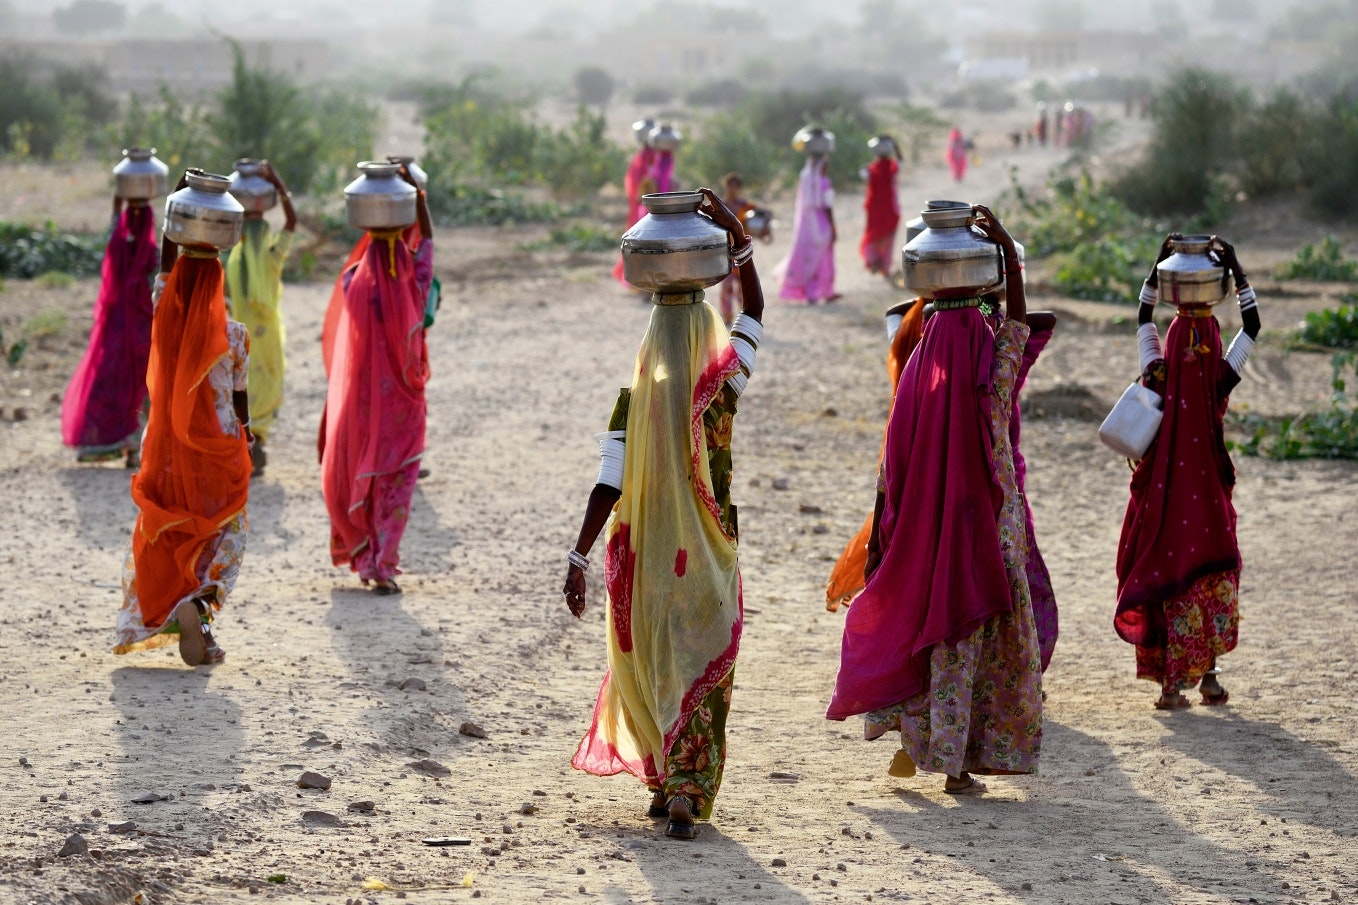 Women in bright saris carrying water jugs on their heads